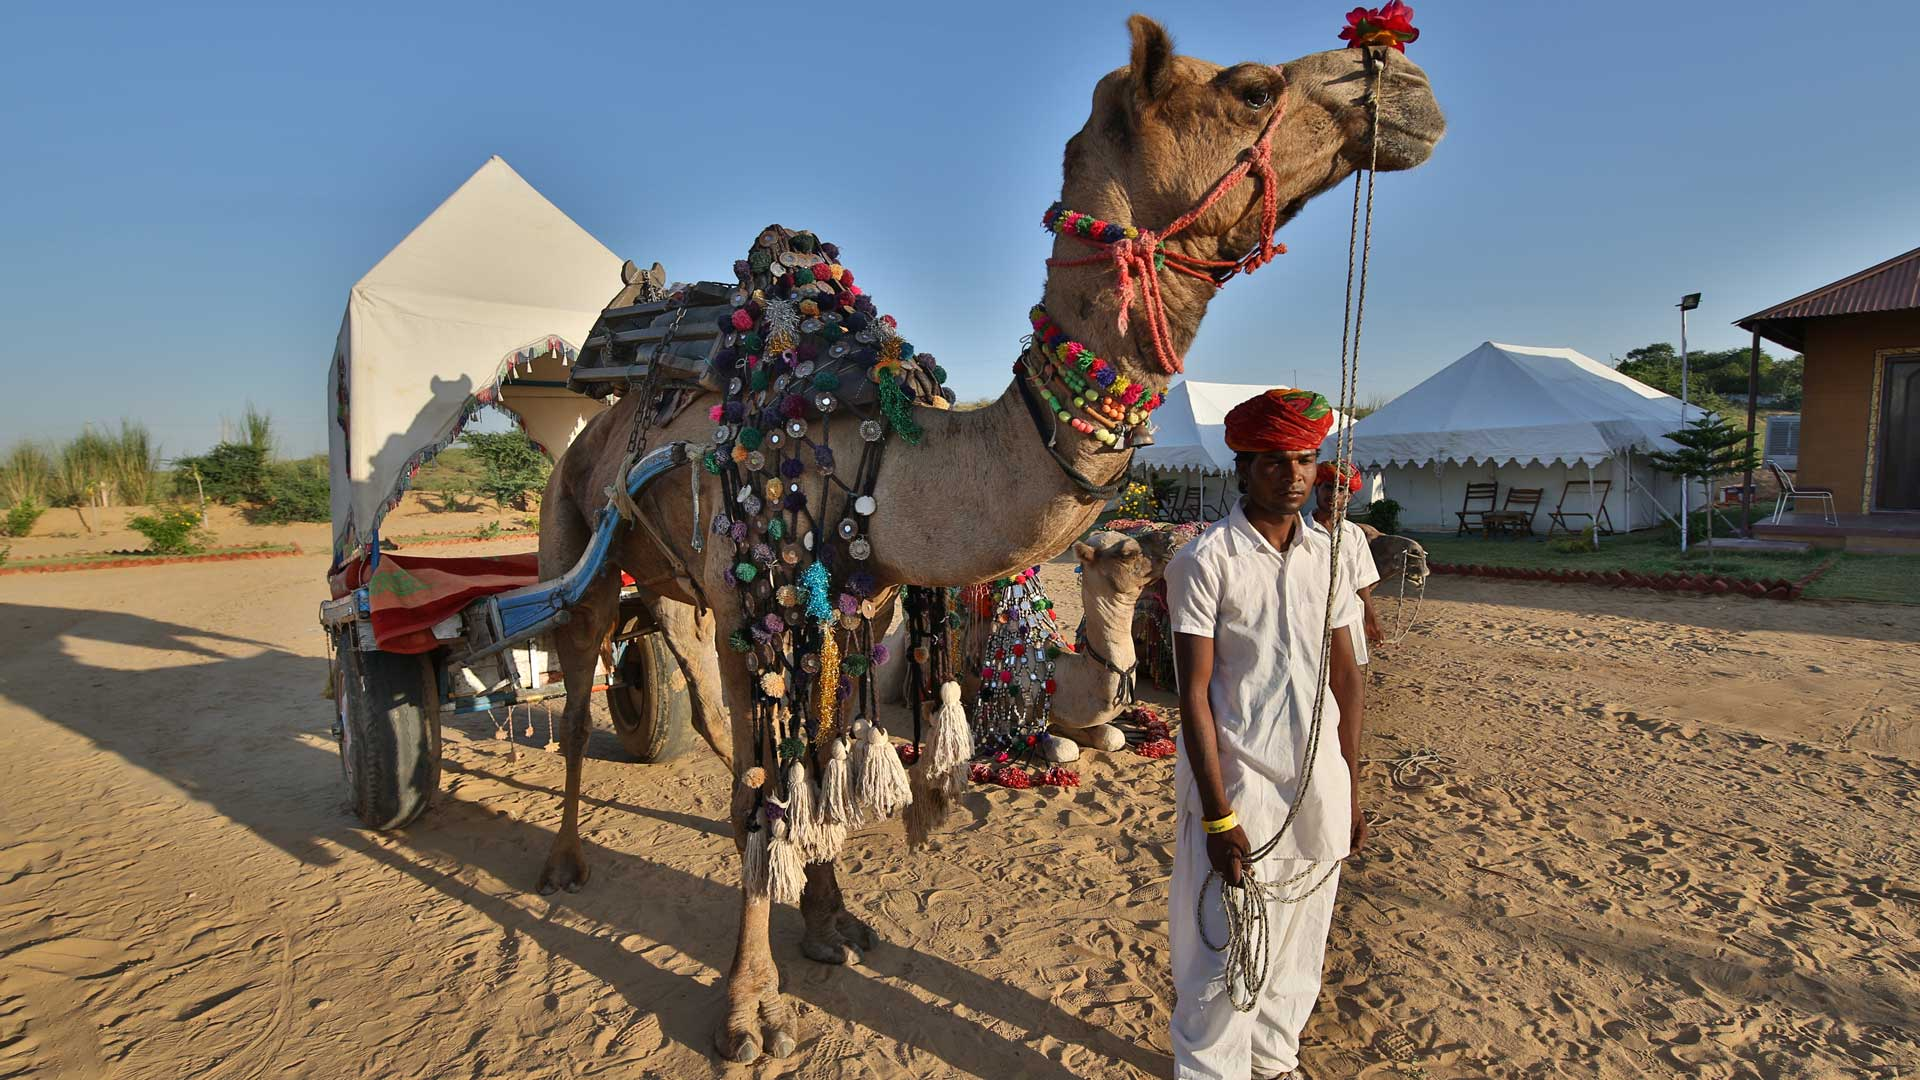 camp pushkar,desert camp,tent pushkar,fair accomodation, adventure pushkar safari, camel safari